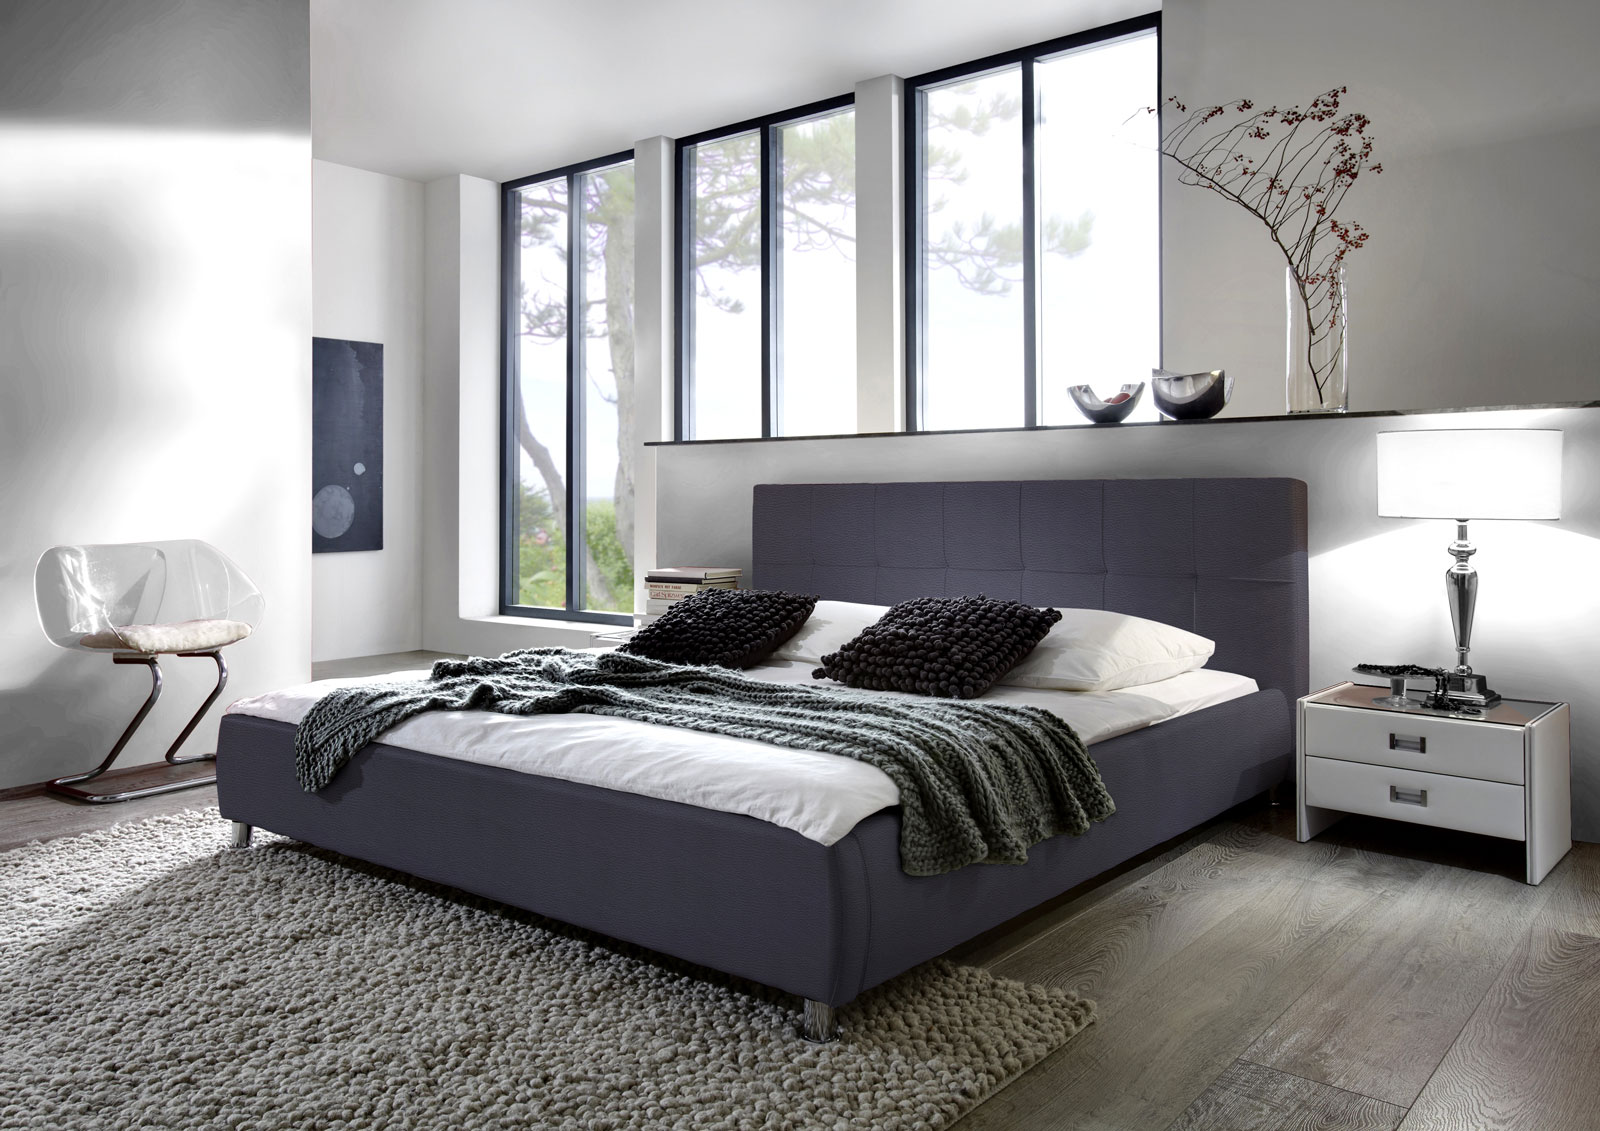 sam polsterbett doppelbett bett 180 x 200 cm grau zarah. Black Bedroom Furniture Sets. Home Design Ideas